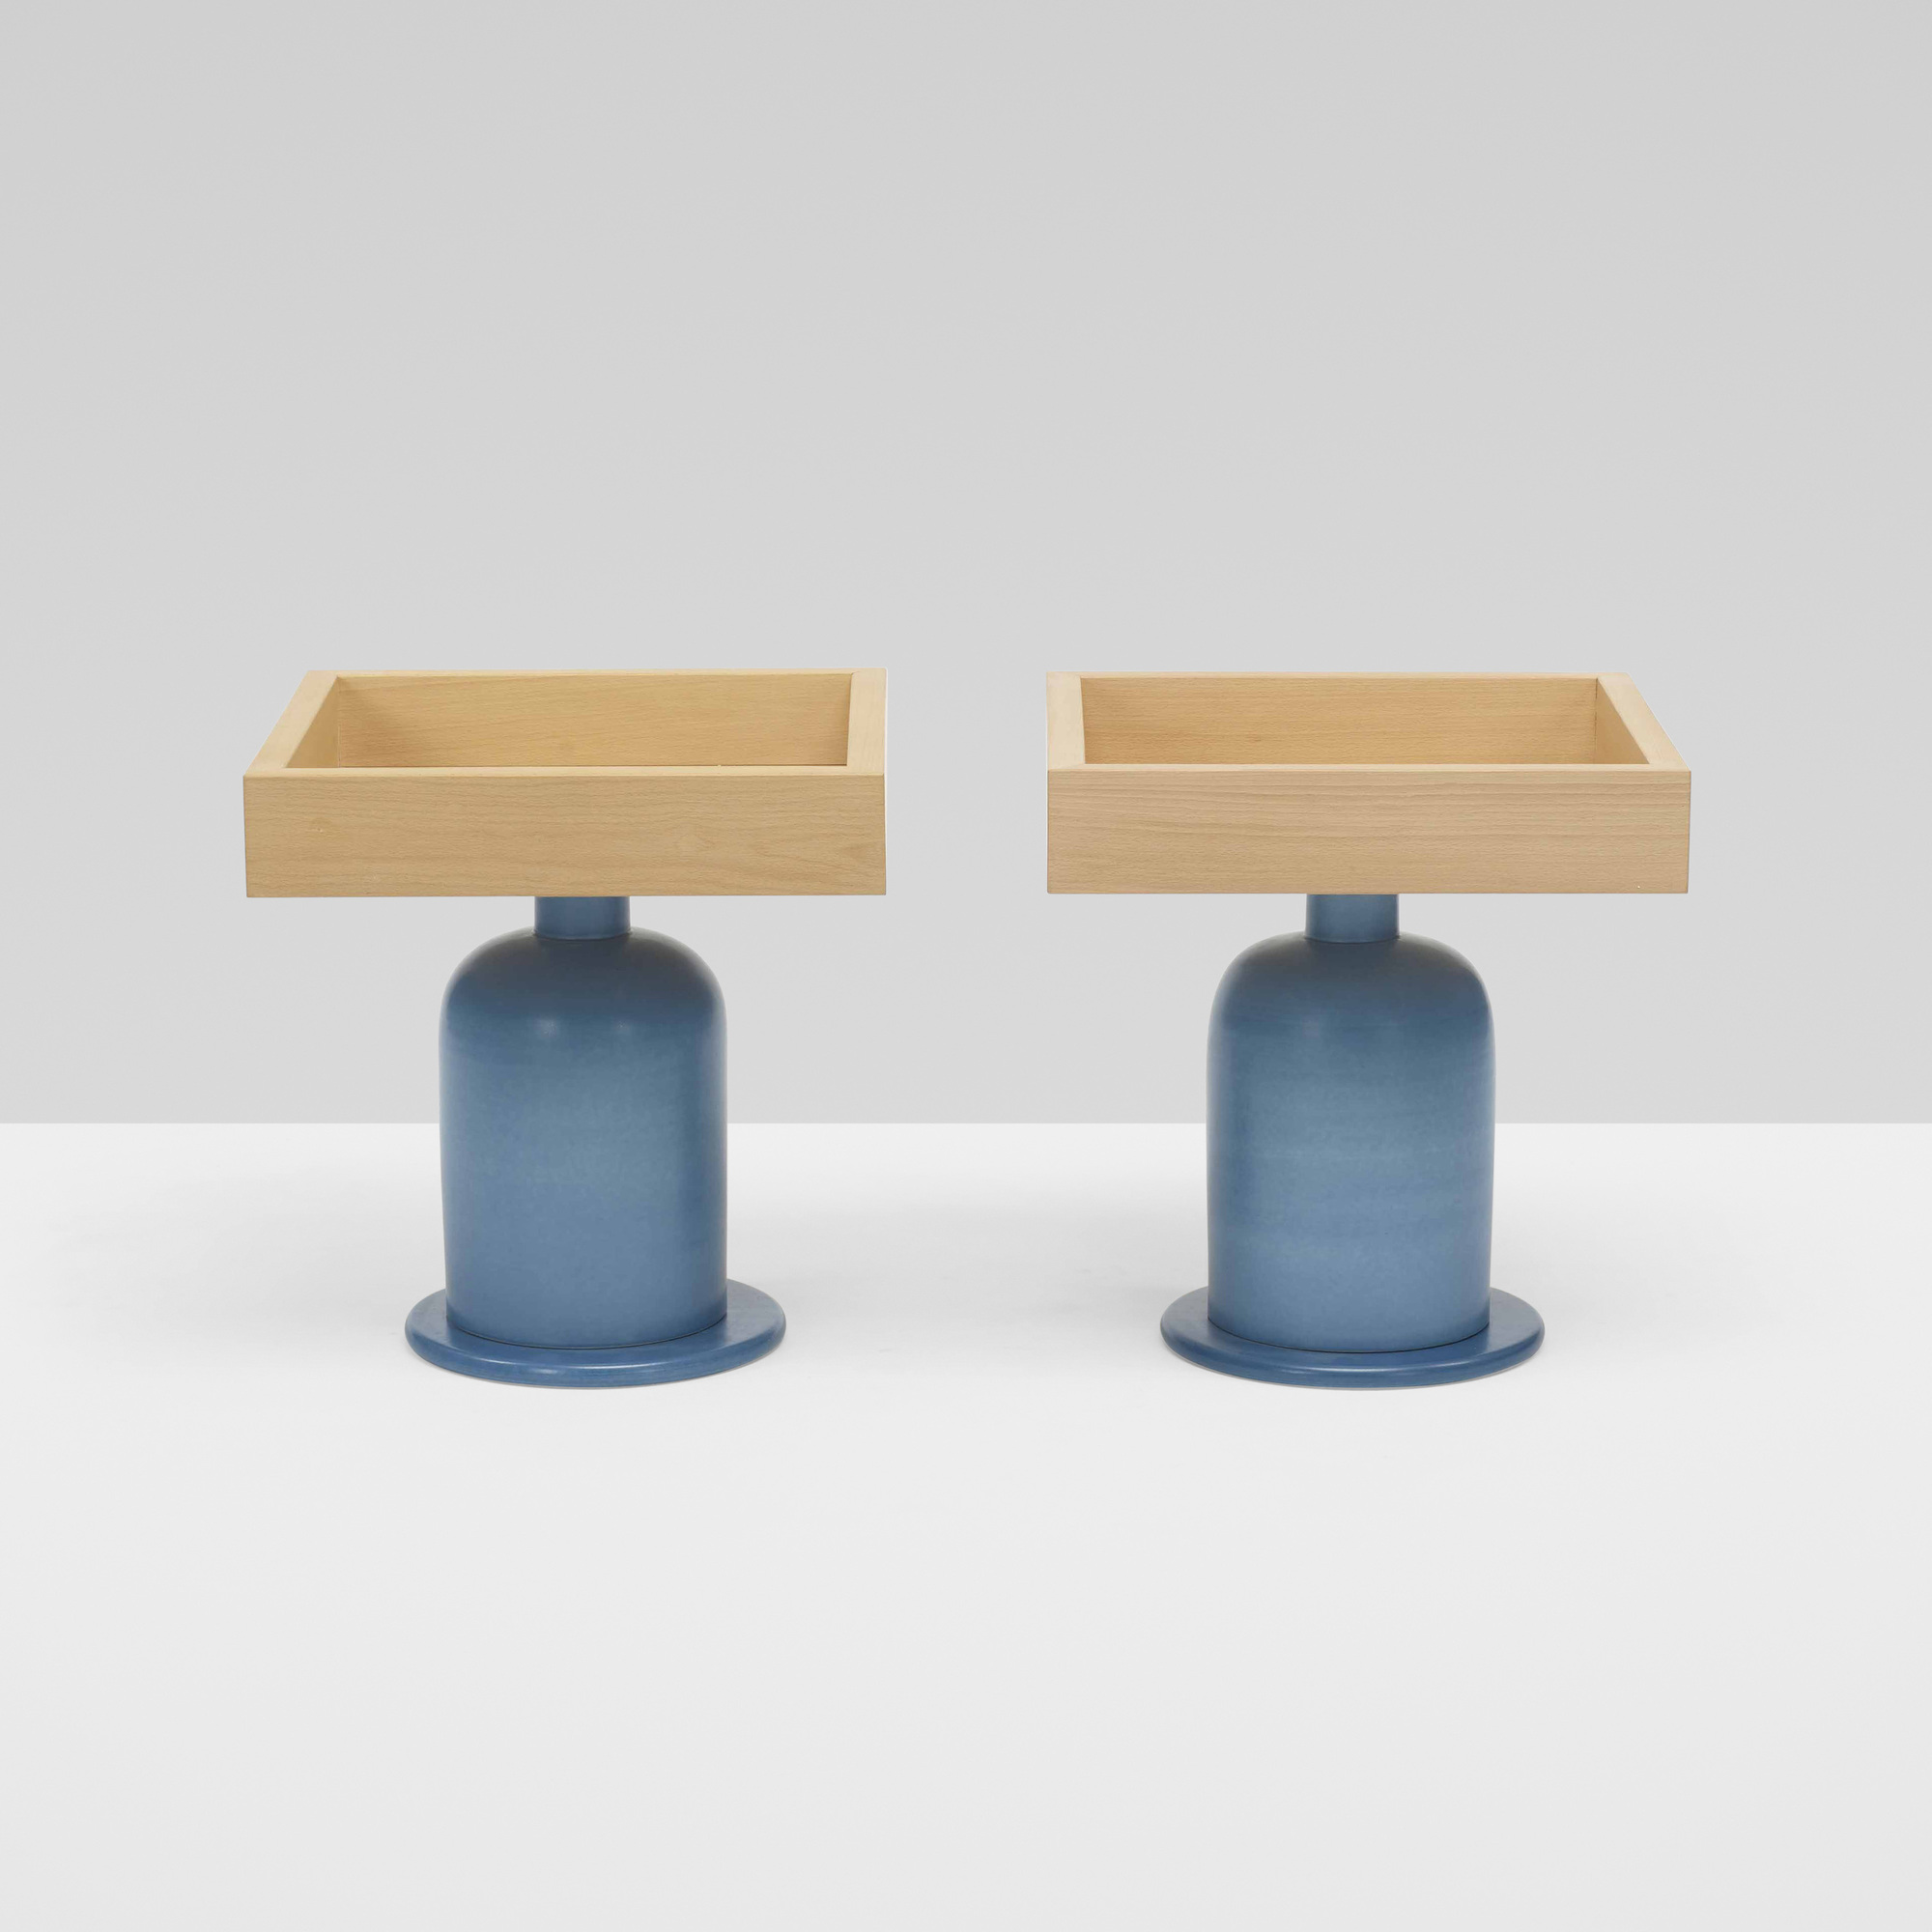 270: Ettore Sottsass / occasional tables, pair (2 of 5)